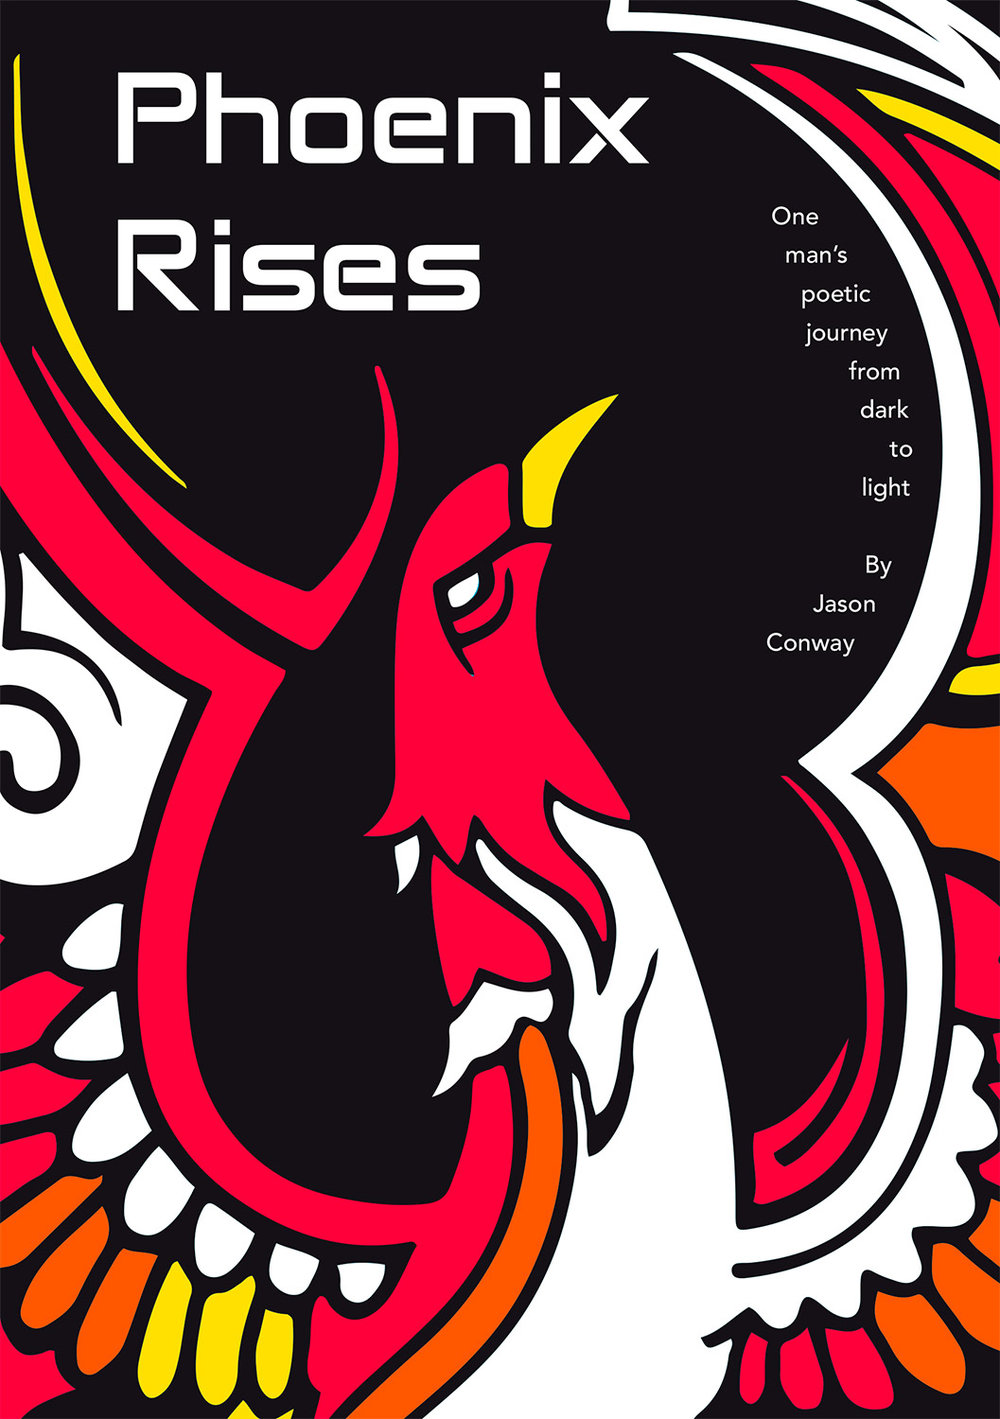 The-Phoenix-Rises-Poetry-Book-Cover-Design-1500pxl.jpg